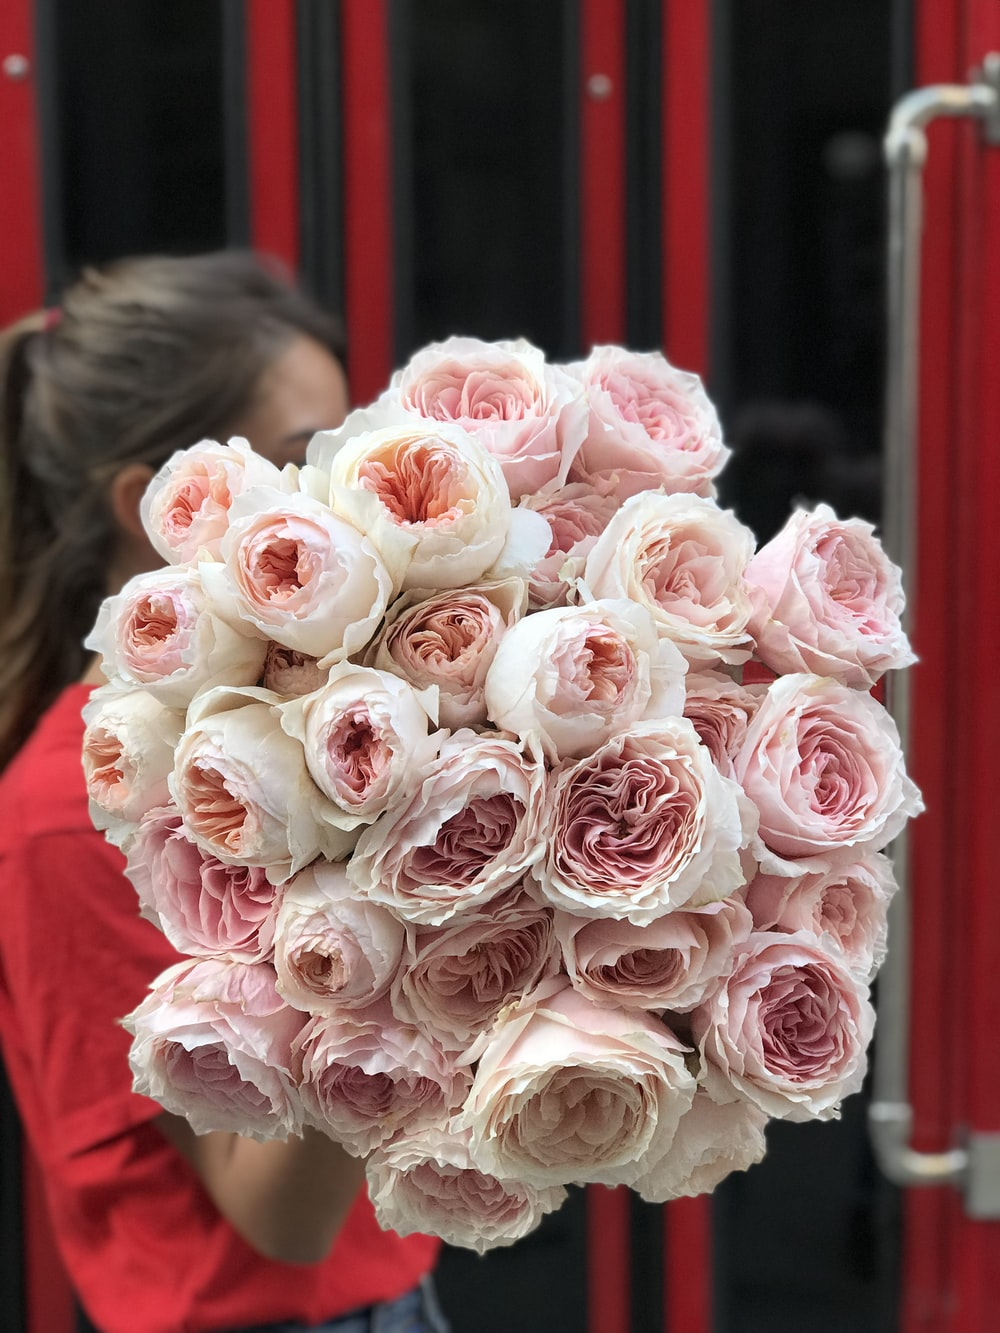 bouquet of pink petaled flowers